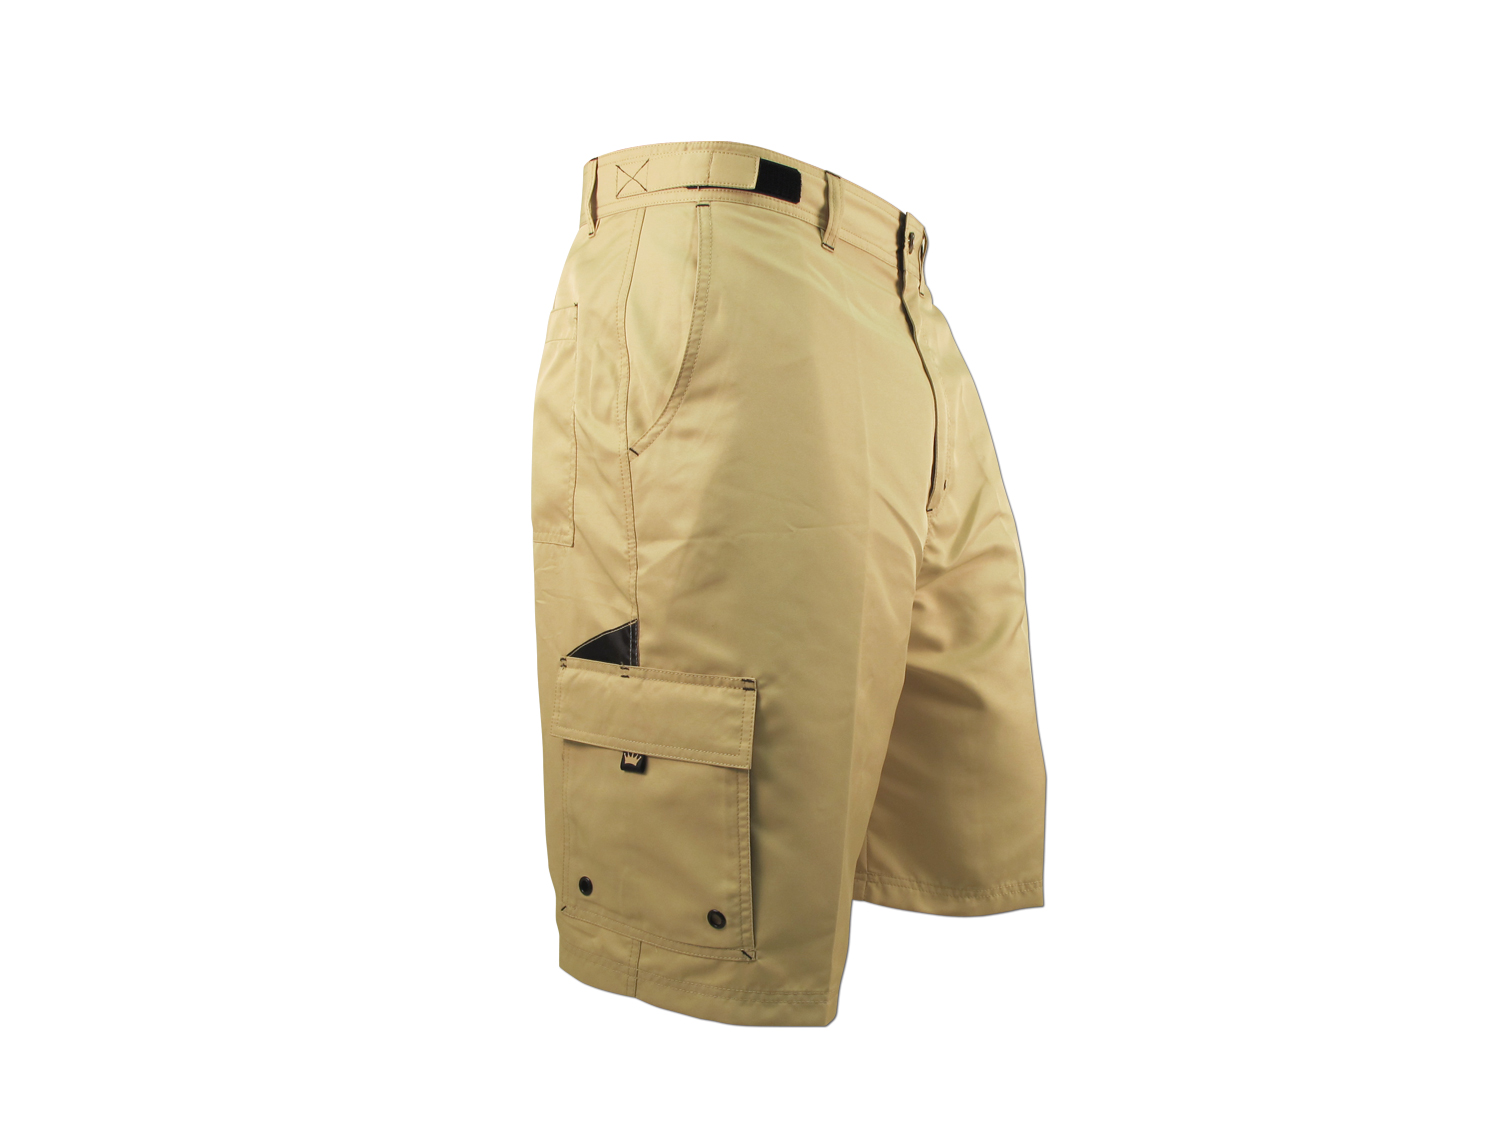 Commando Fishing Short - Khaki (5203K) - $44.99